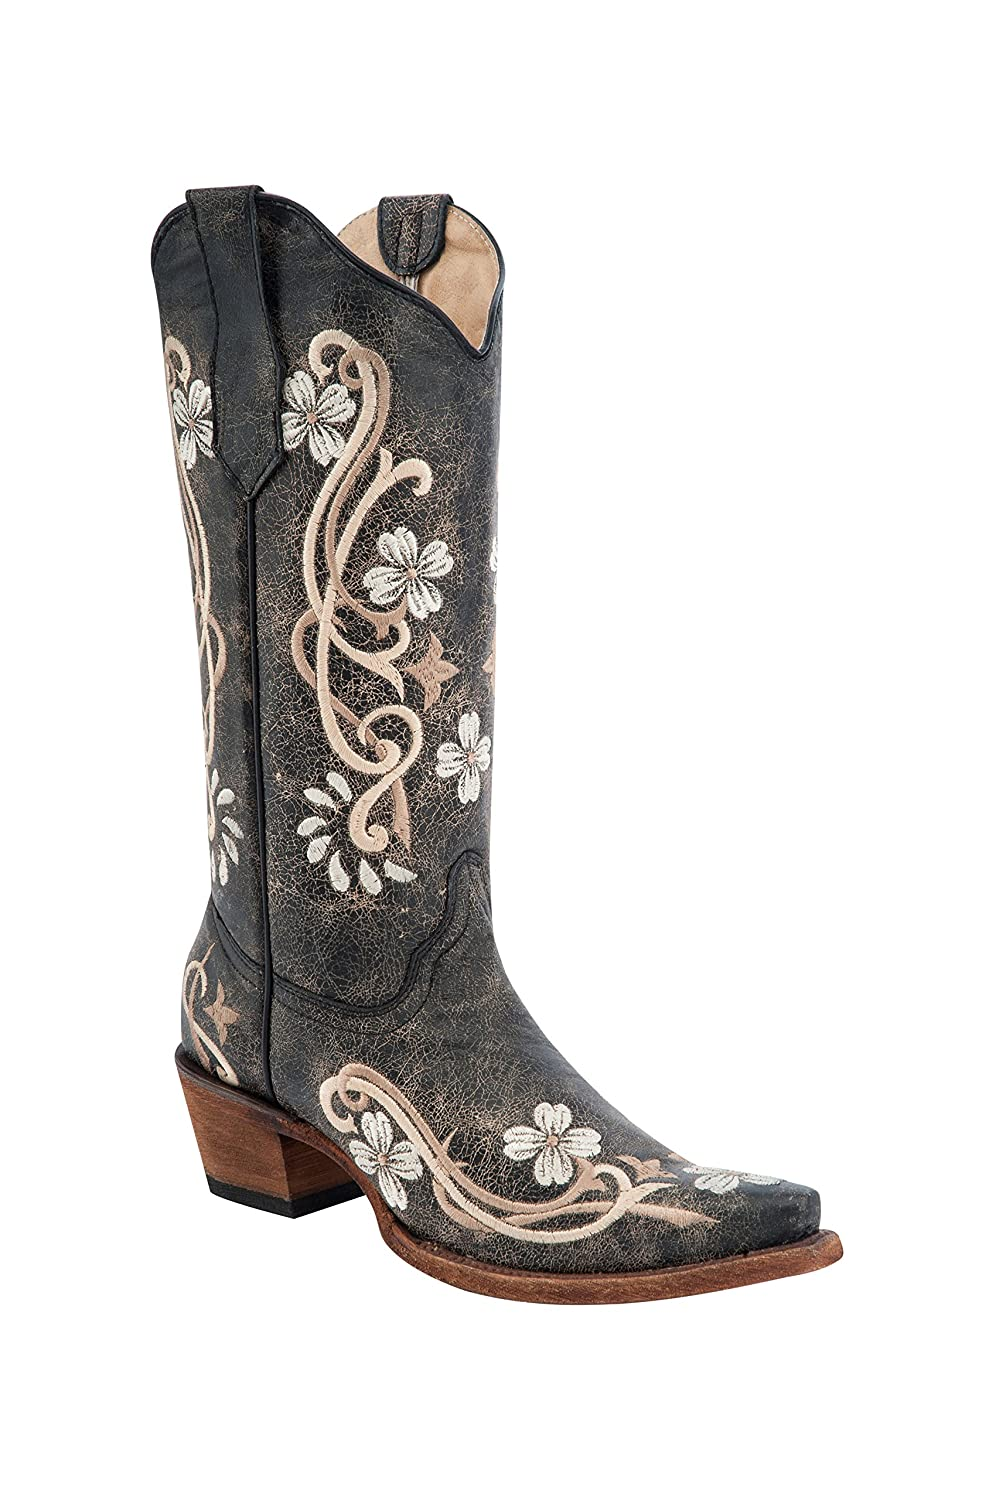 Corral Circle G Women's Multi-Colored Embroidered Genuine Brown Leather Cowgirl Boots B01DQTH9PU 9.5 B(M) US|Black